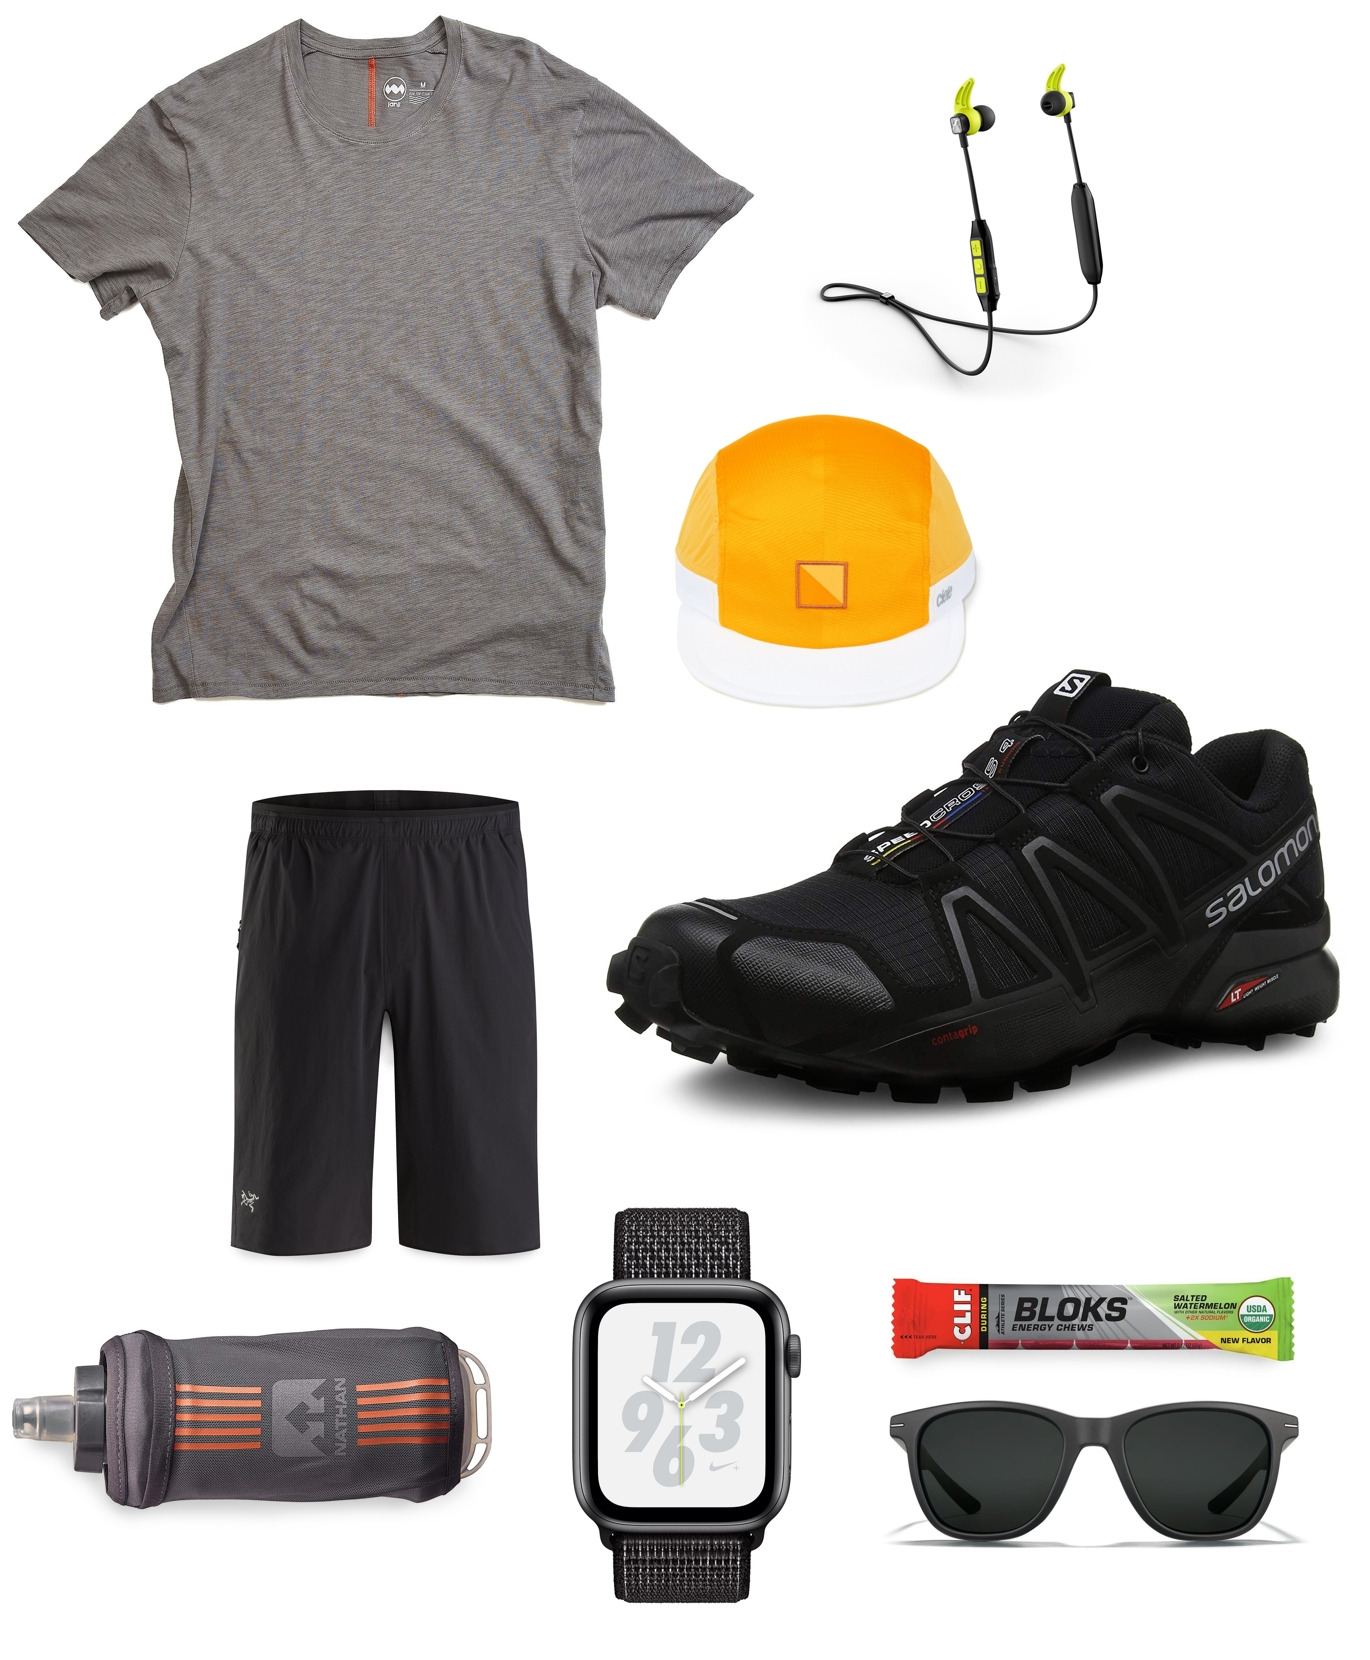 Men's trail running outfit inspiration